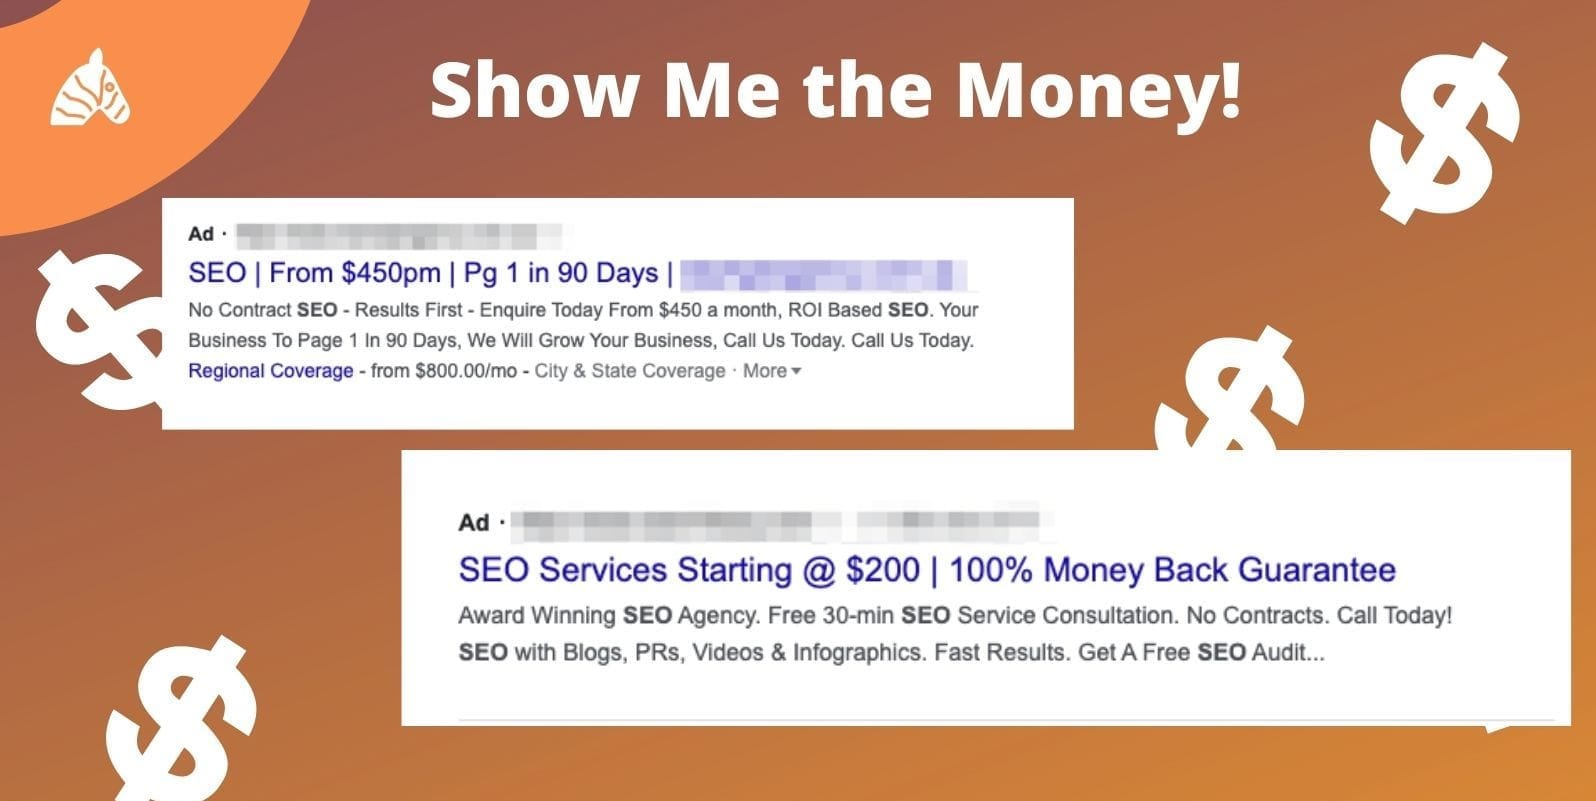 examples of websites offering guaranteed seo results